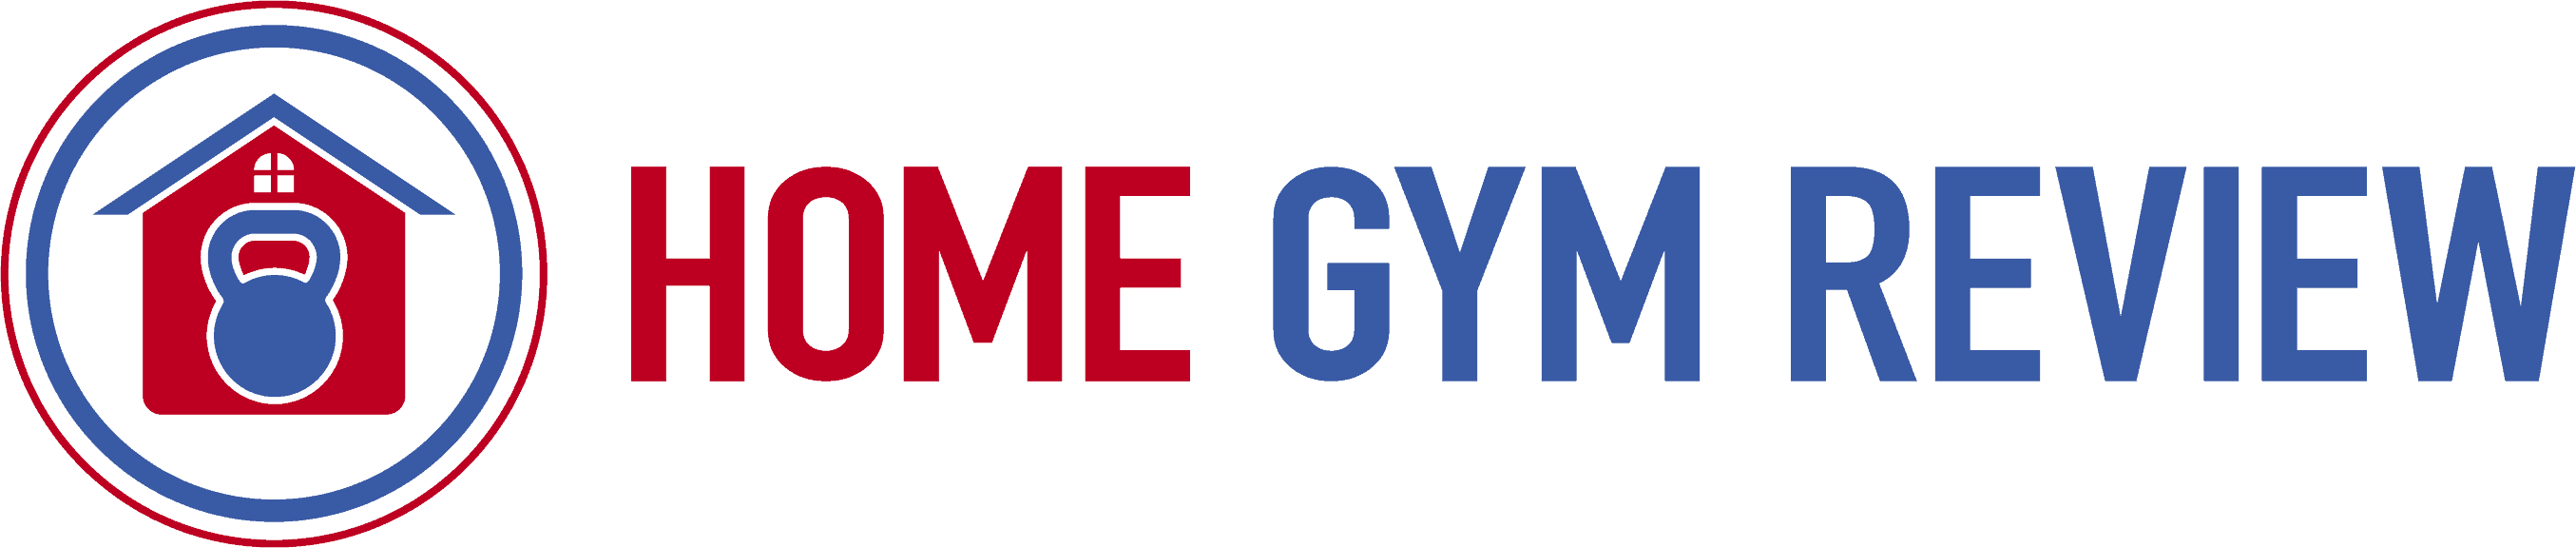 Home Gym Review